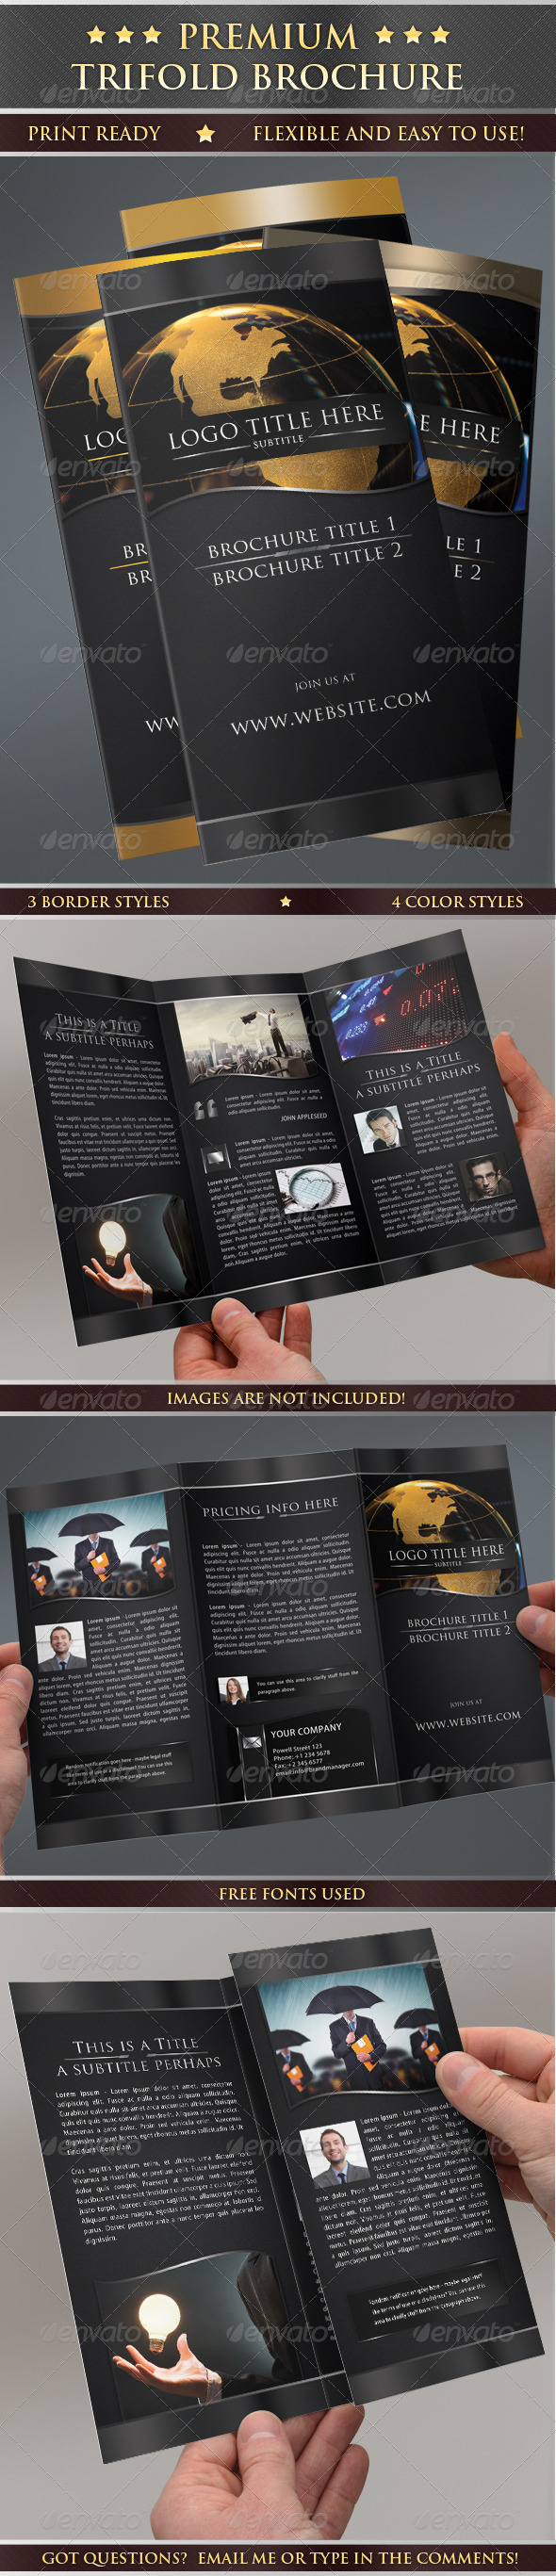 Premium Print Ready Trifold Brochure - Corporate Brochures